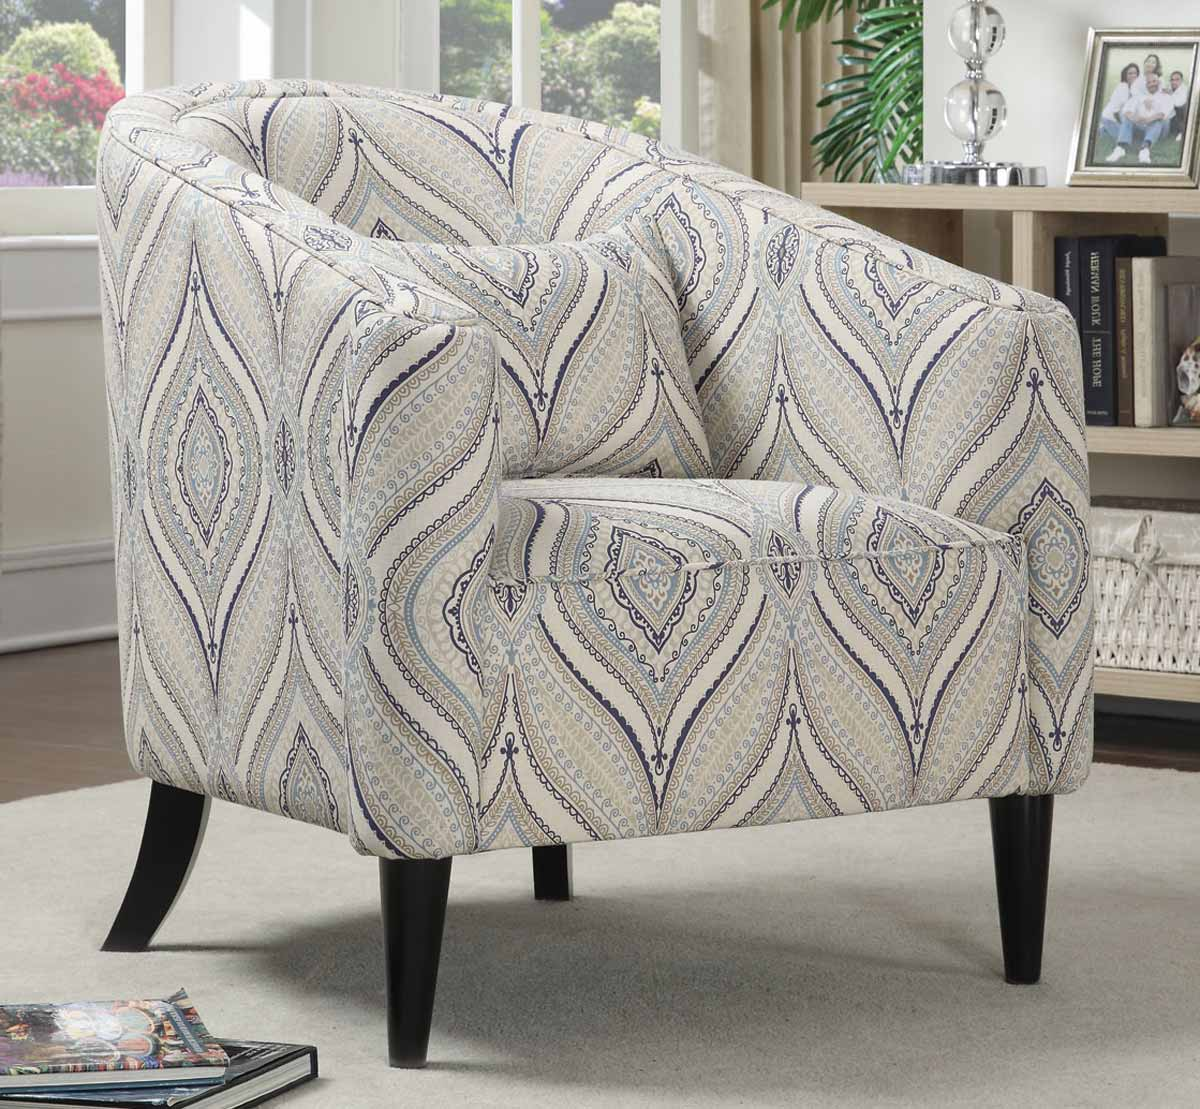 Coaster 902405 Accent Chair - Off White, Blue, Grey